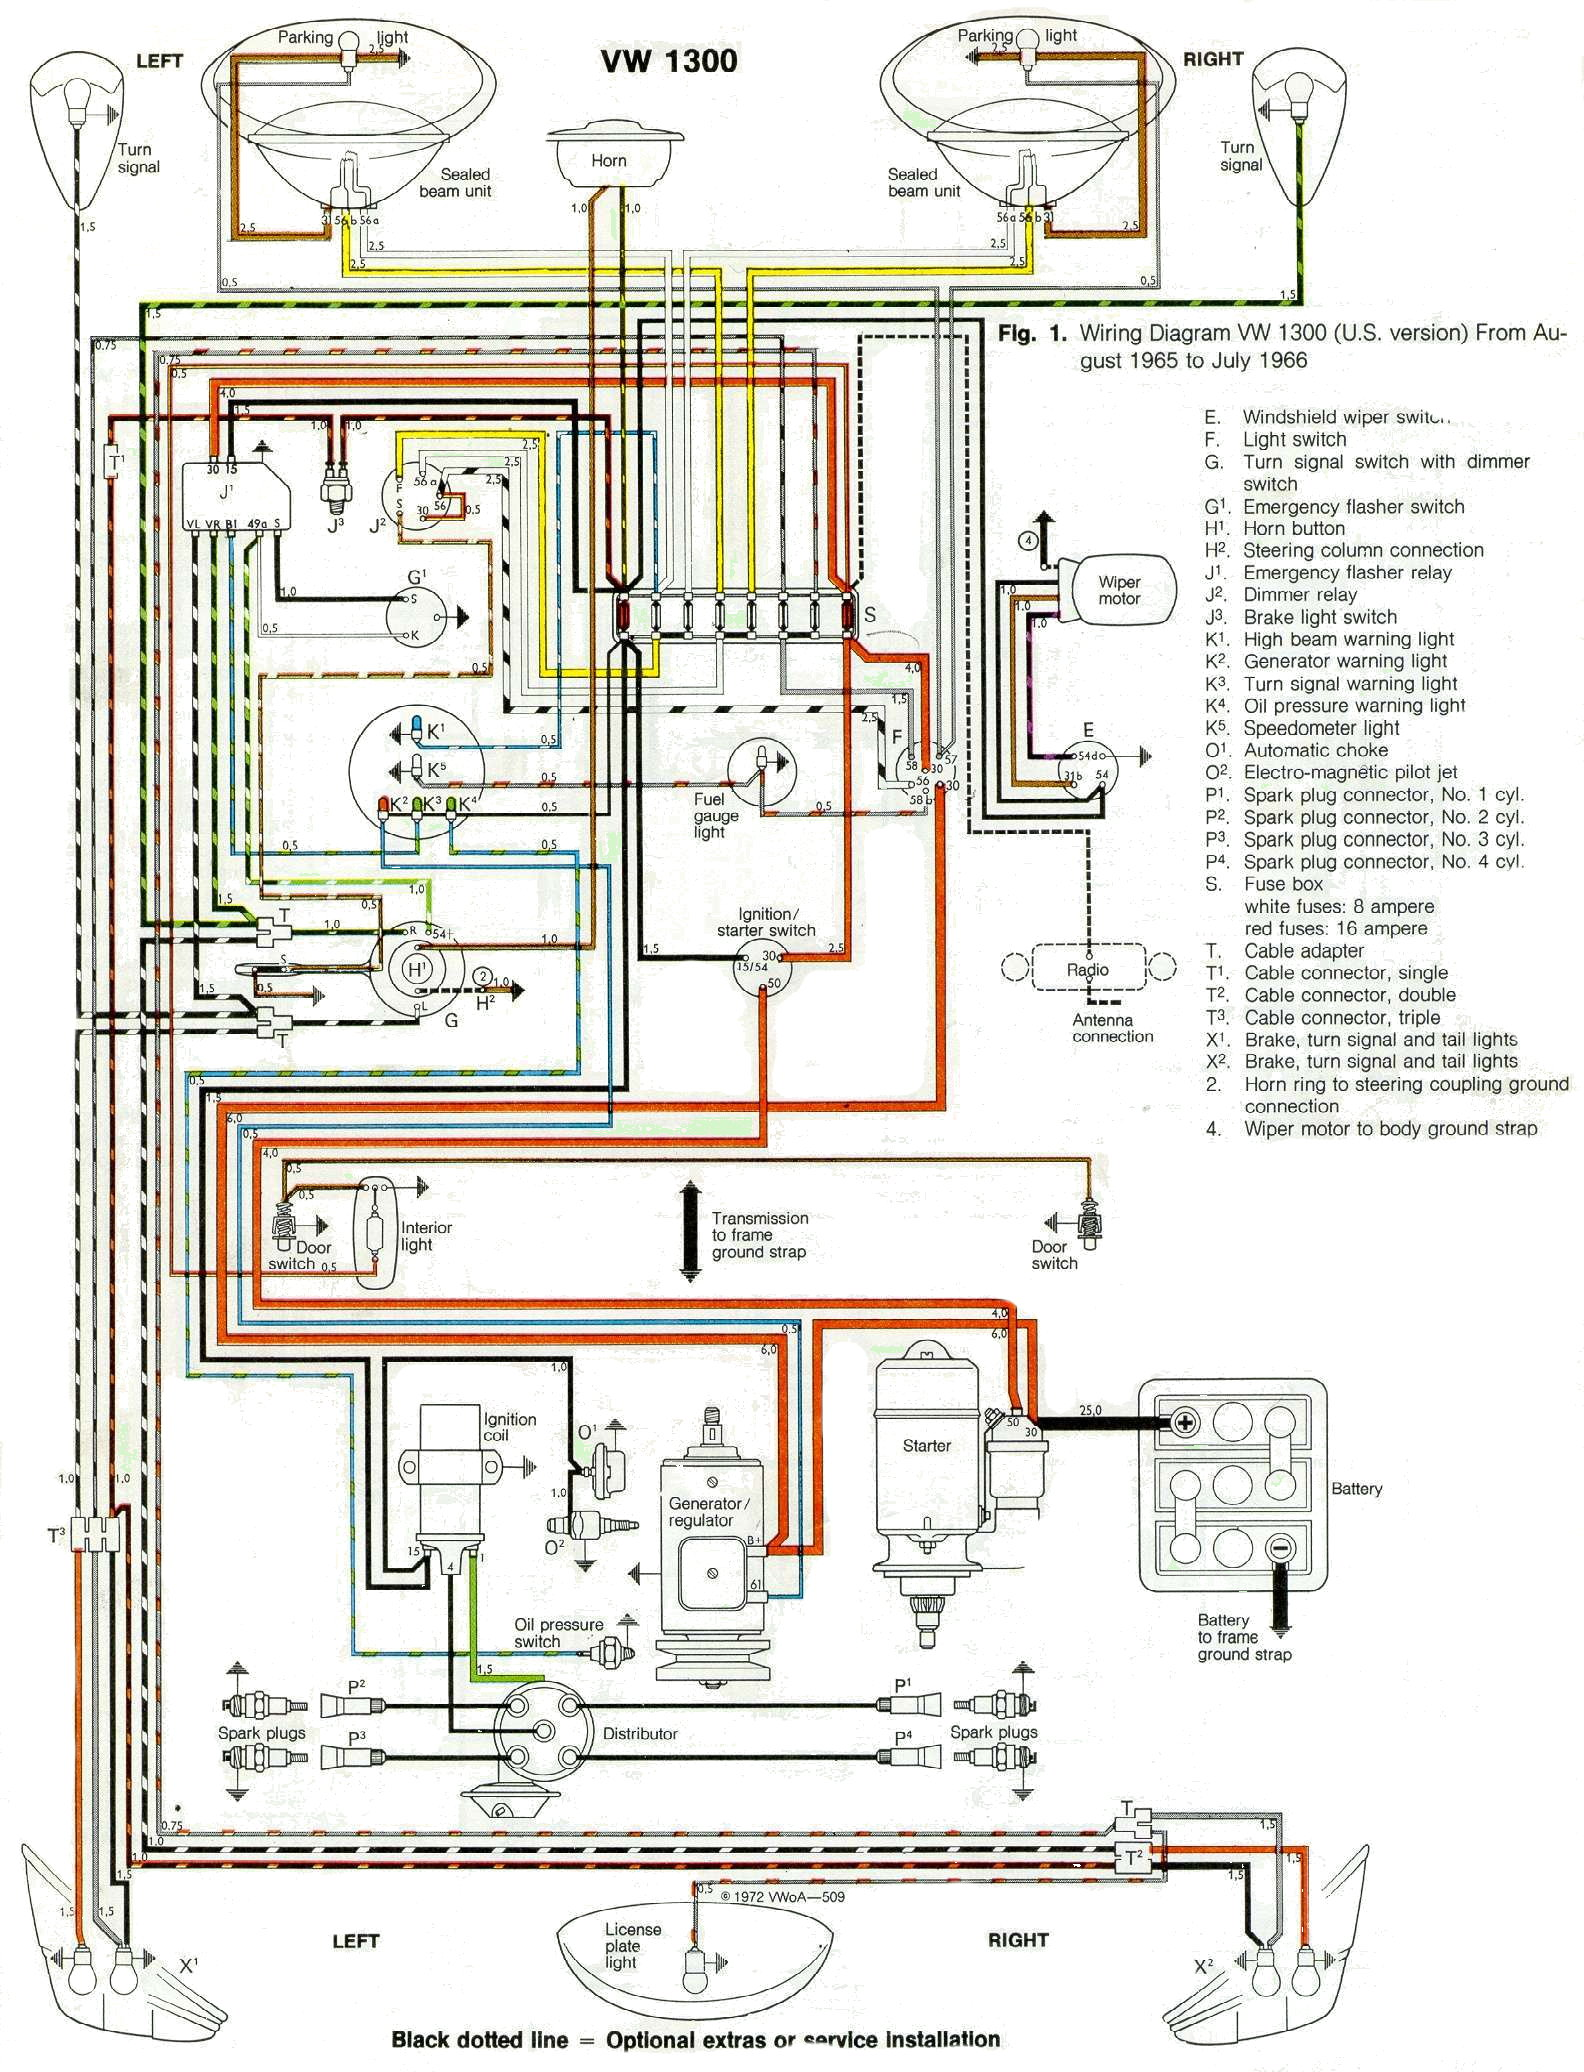 1966 Wiring 1966 wiring diagram vw wiring diagrams at readyjetset.co